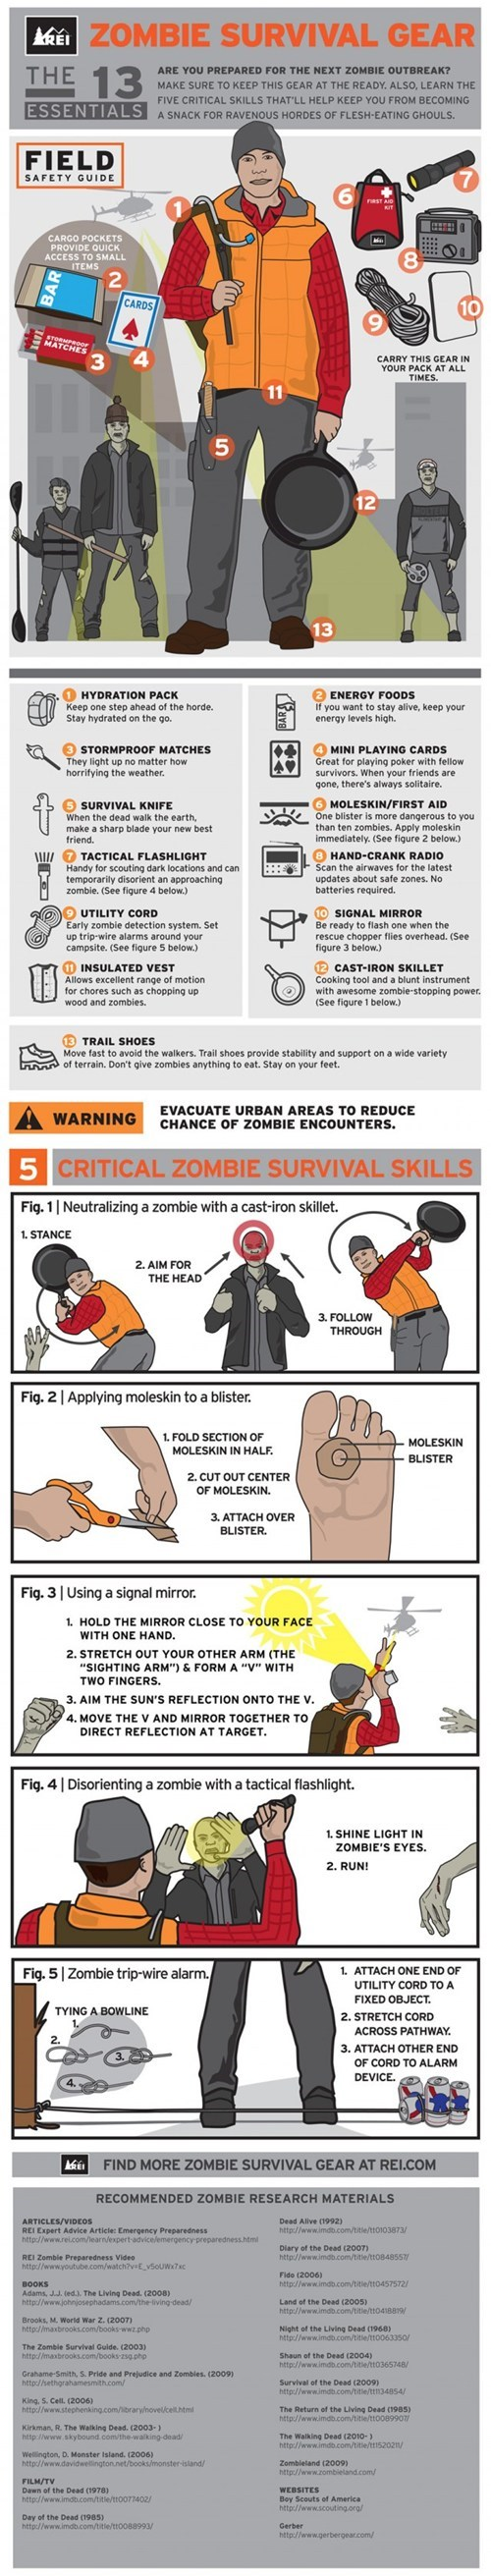 zombie survival guide Rei infographic